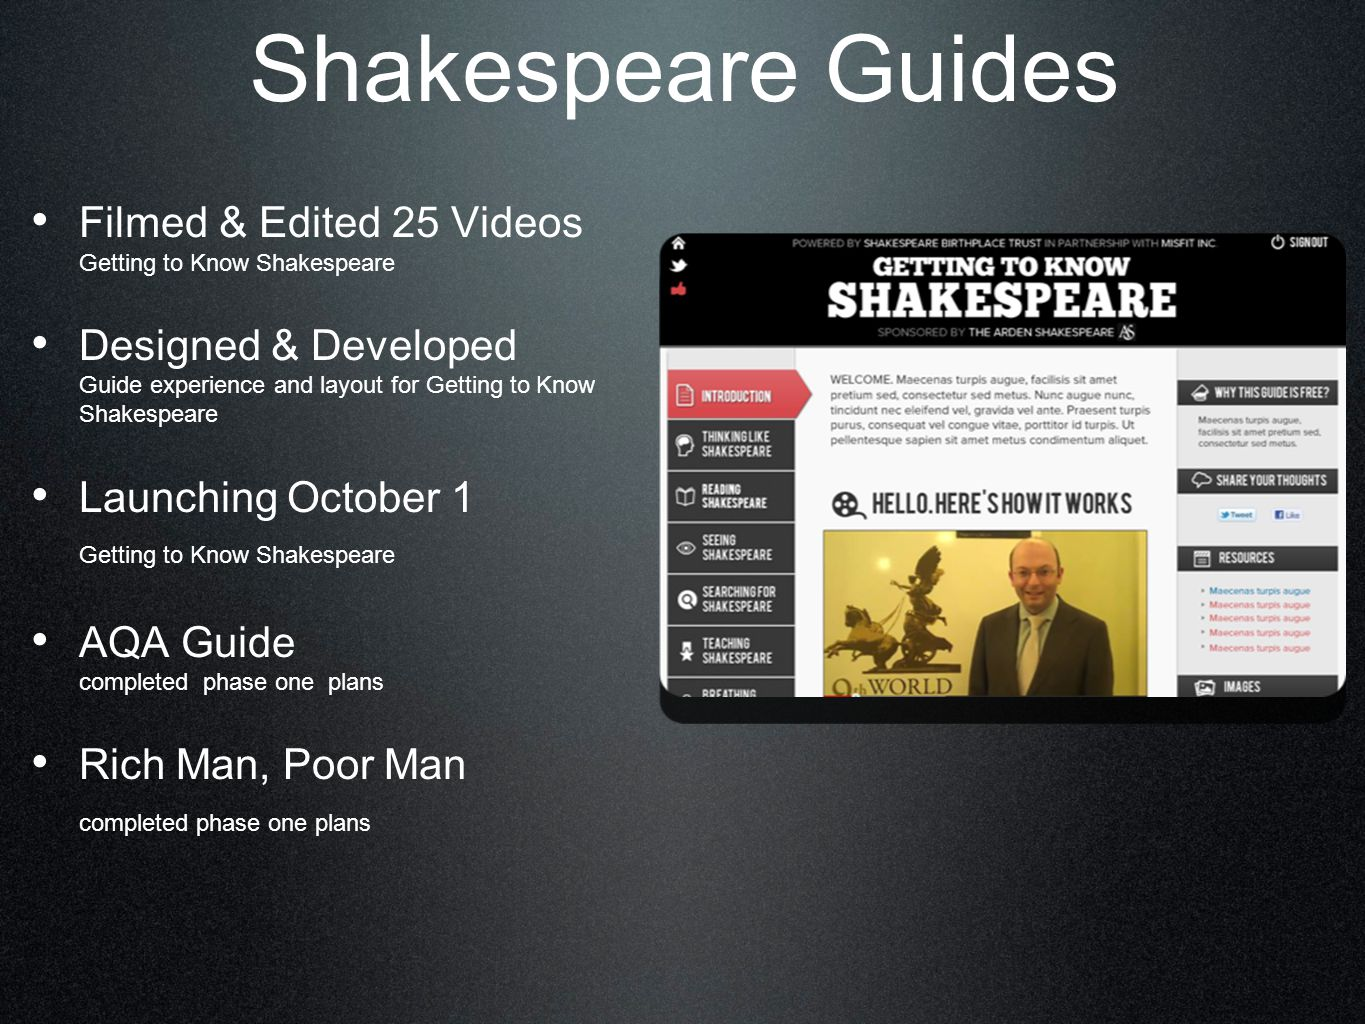 Shakespeare Guides Filmed & Edited 25 Videos Getting to Know Shakespeare Designed & Developed Guide experience and layout for Getting to Know Shakespeare Launching October 1 Getting to Know Shakespeare AQA Guide completed phase one plans Rich Man, Poor Man completed phase one plans